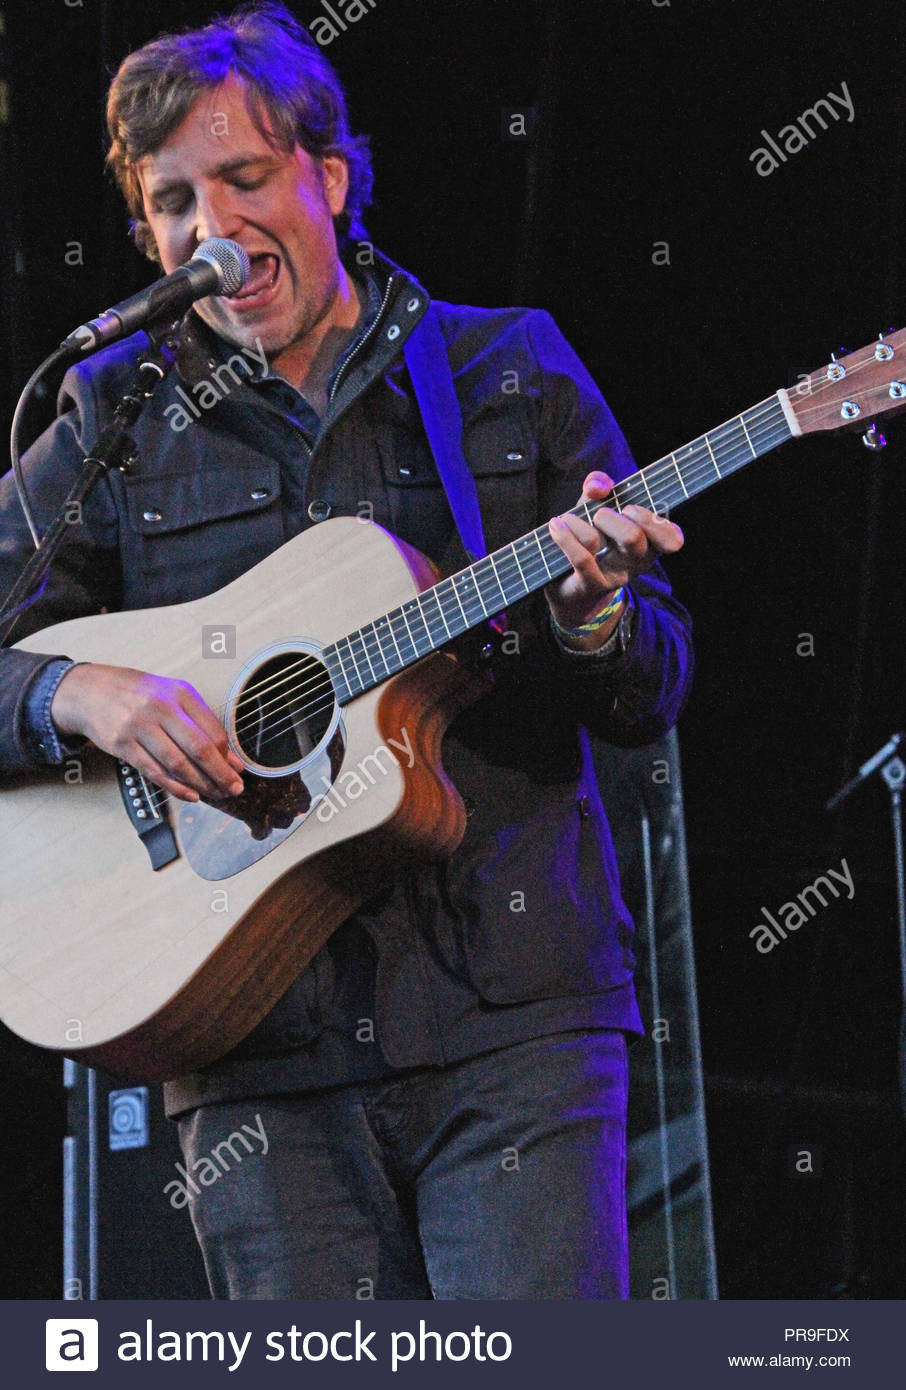 James Walsh (starsailor) supports James at a sold out Delamere Forest in Cheshire as part of their Forest Live concerts on Sunday 05  July 2015 - Stock Image